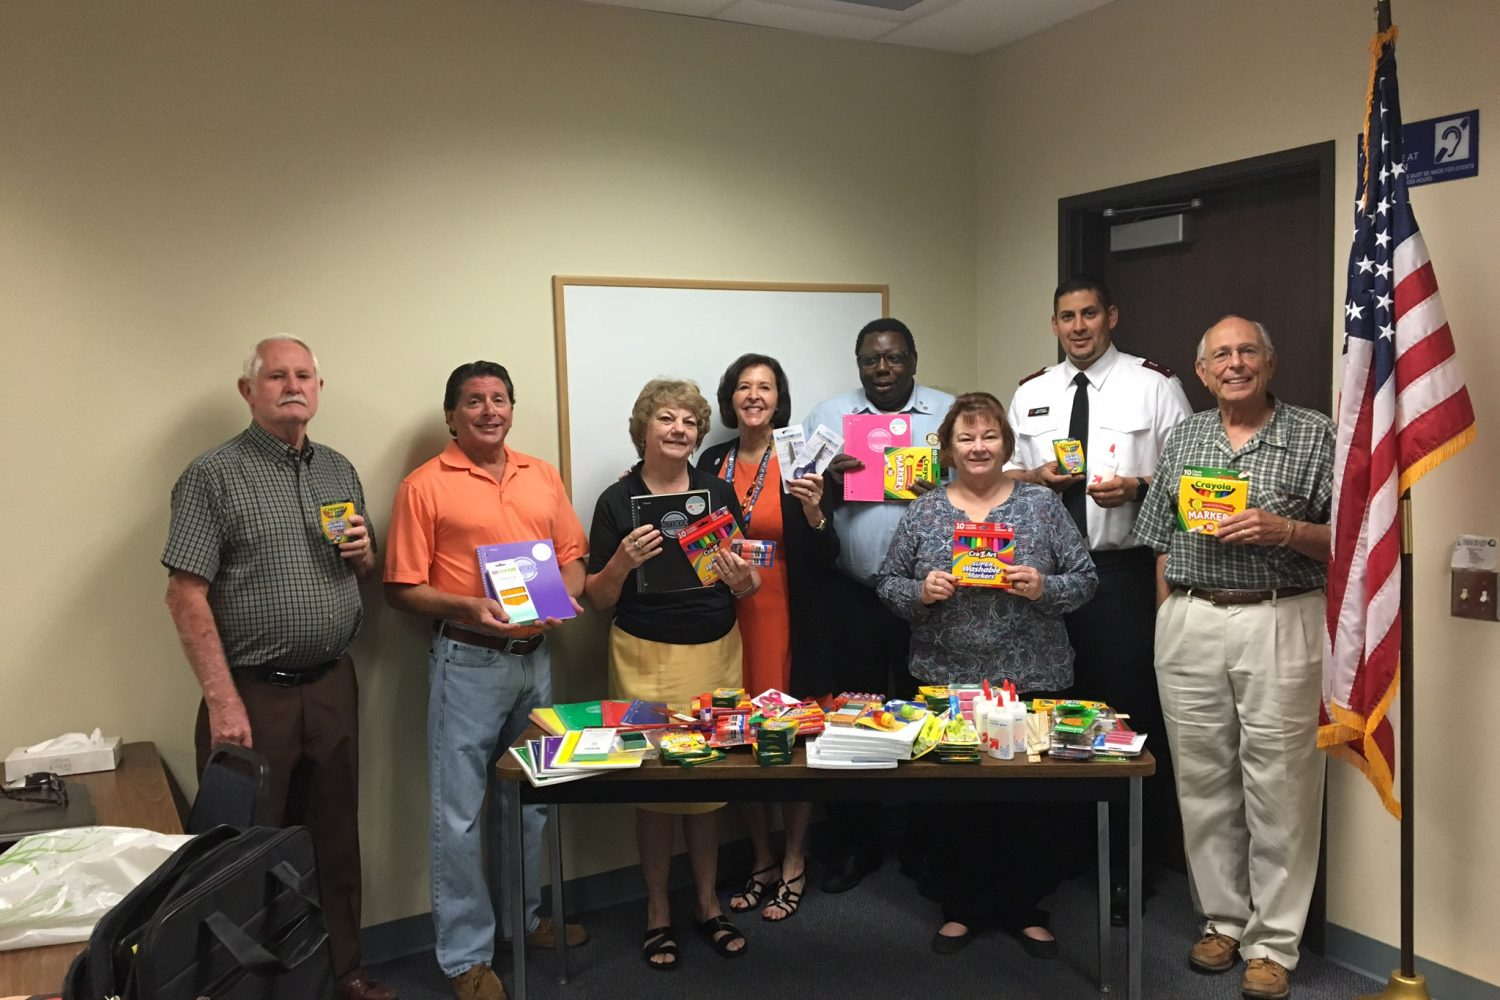 Hemet Sunrise donated school supplies to Salvation Army for the S.A.M. Program